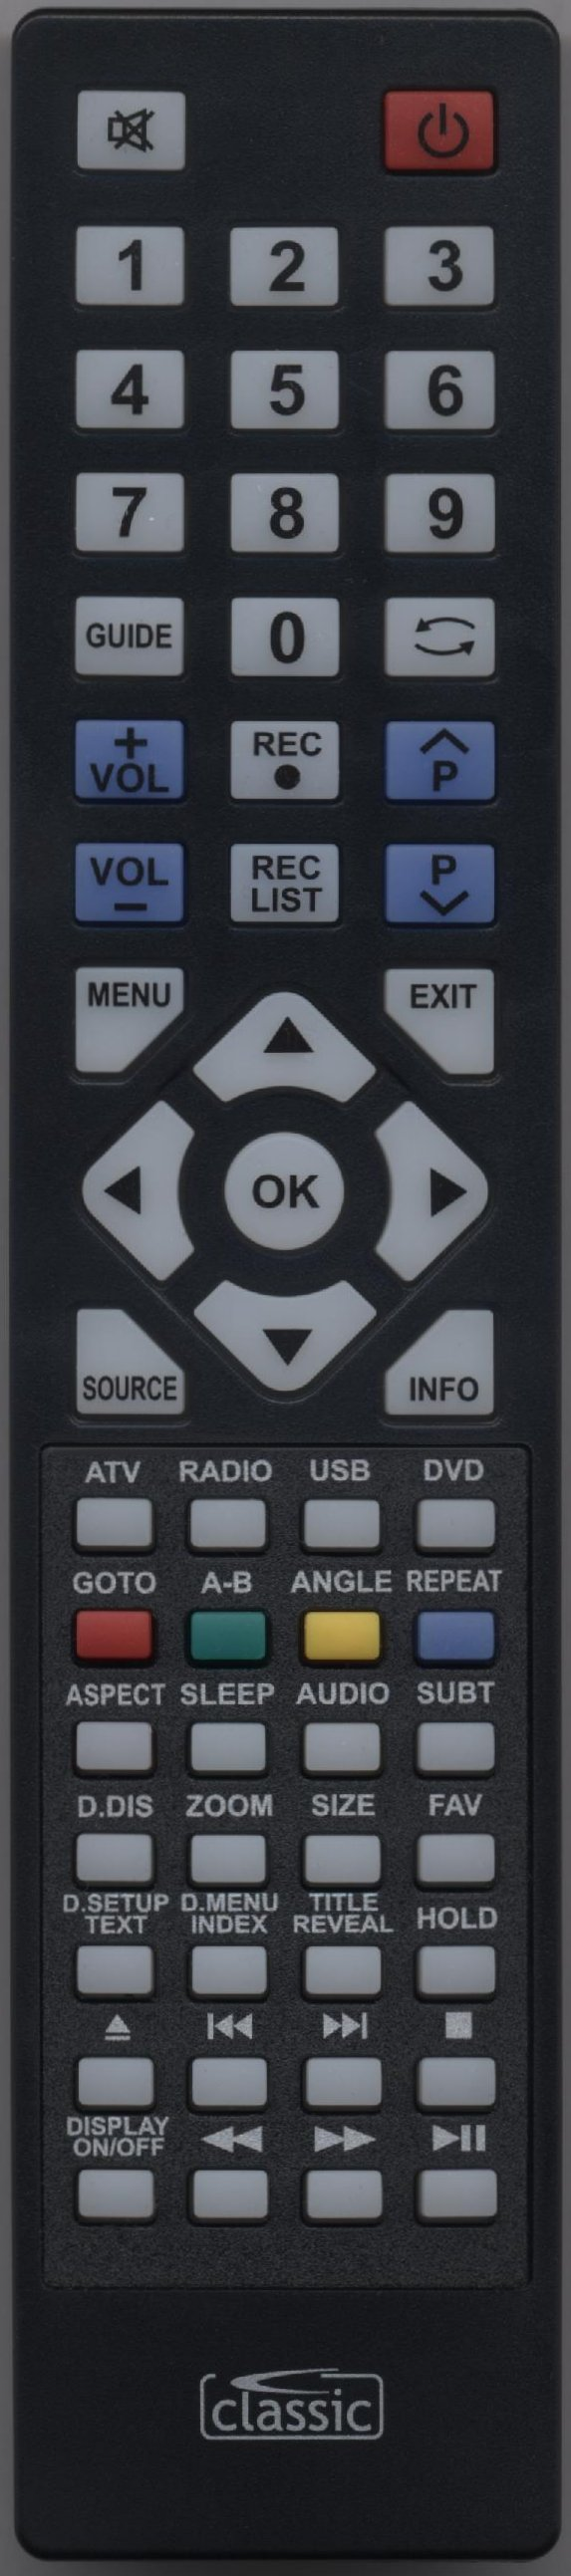 Blaupunkt 216-54G-GB-TCDUP-UK Remote Control Alternative